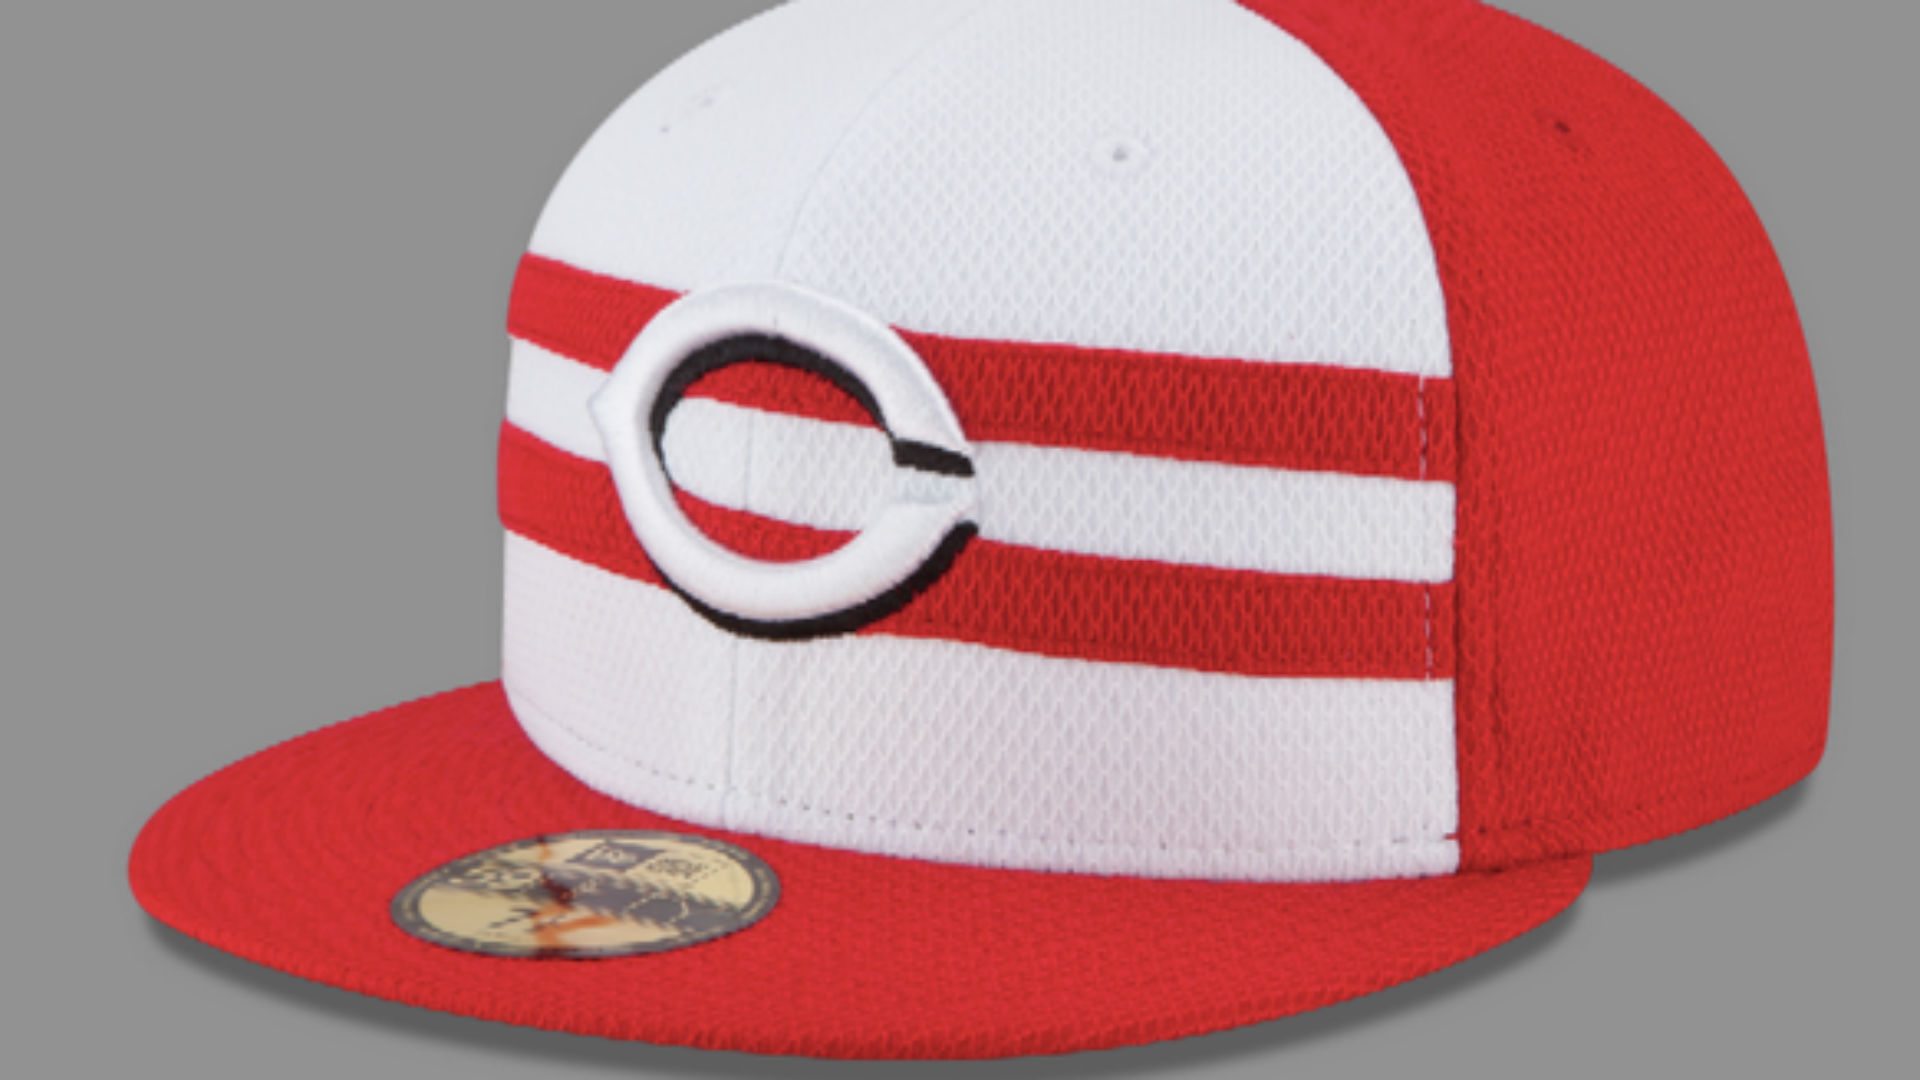 Reds-All-Star-Cap-FTR-New Era.jpg